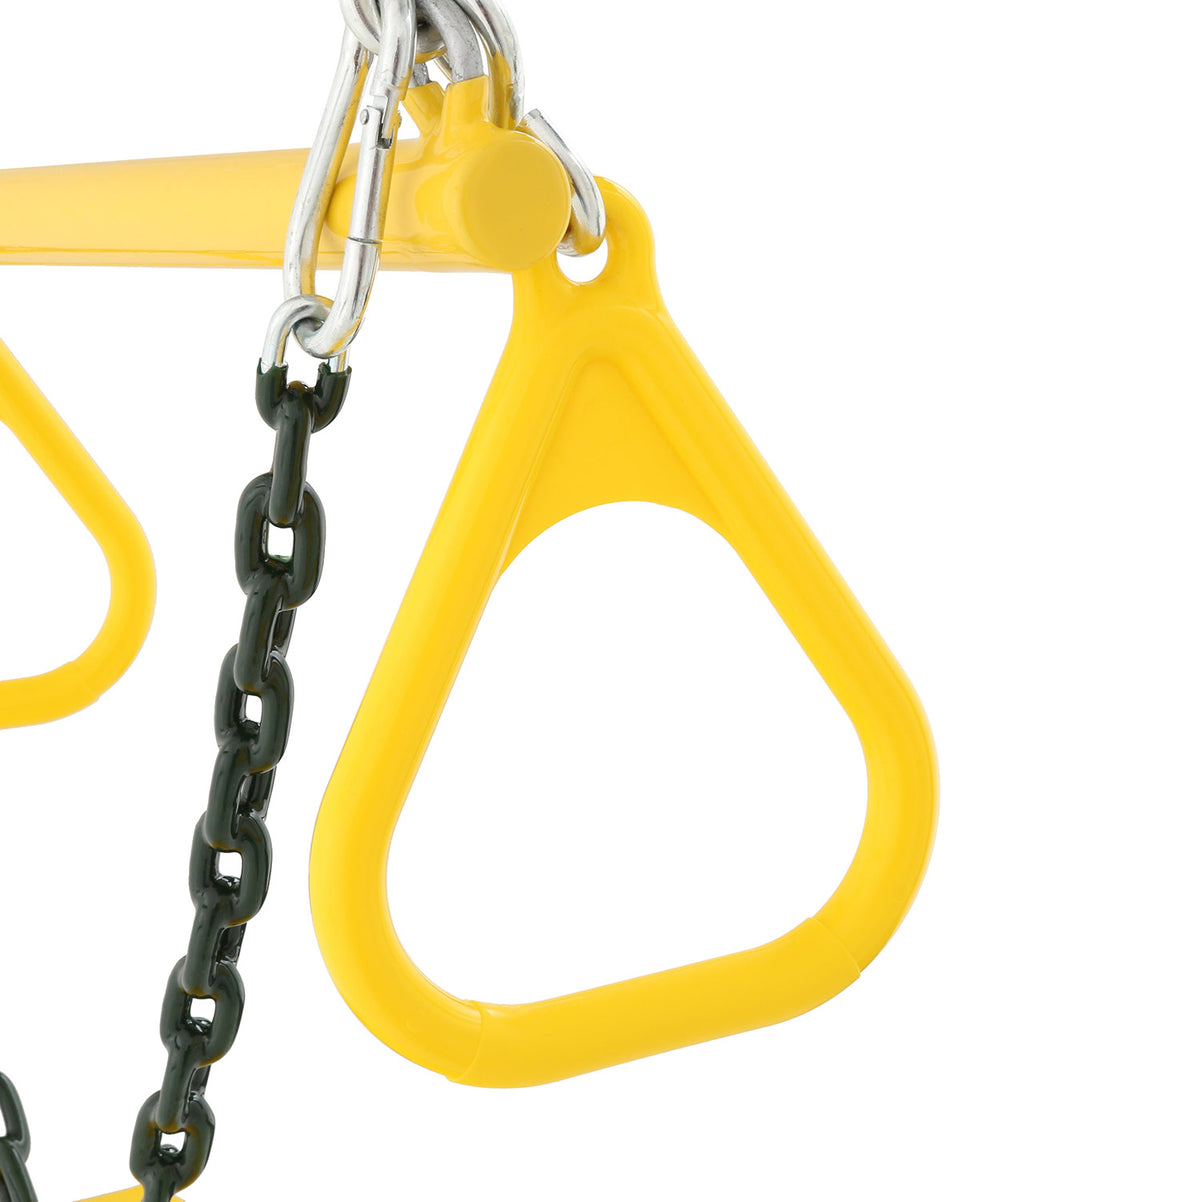 Gorilla-Playsets-Bouy-Ball-W-Trapeze-Yellow-Support2